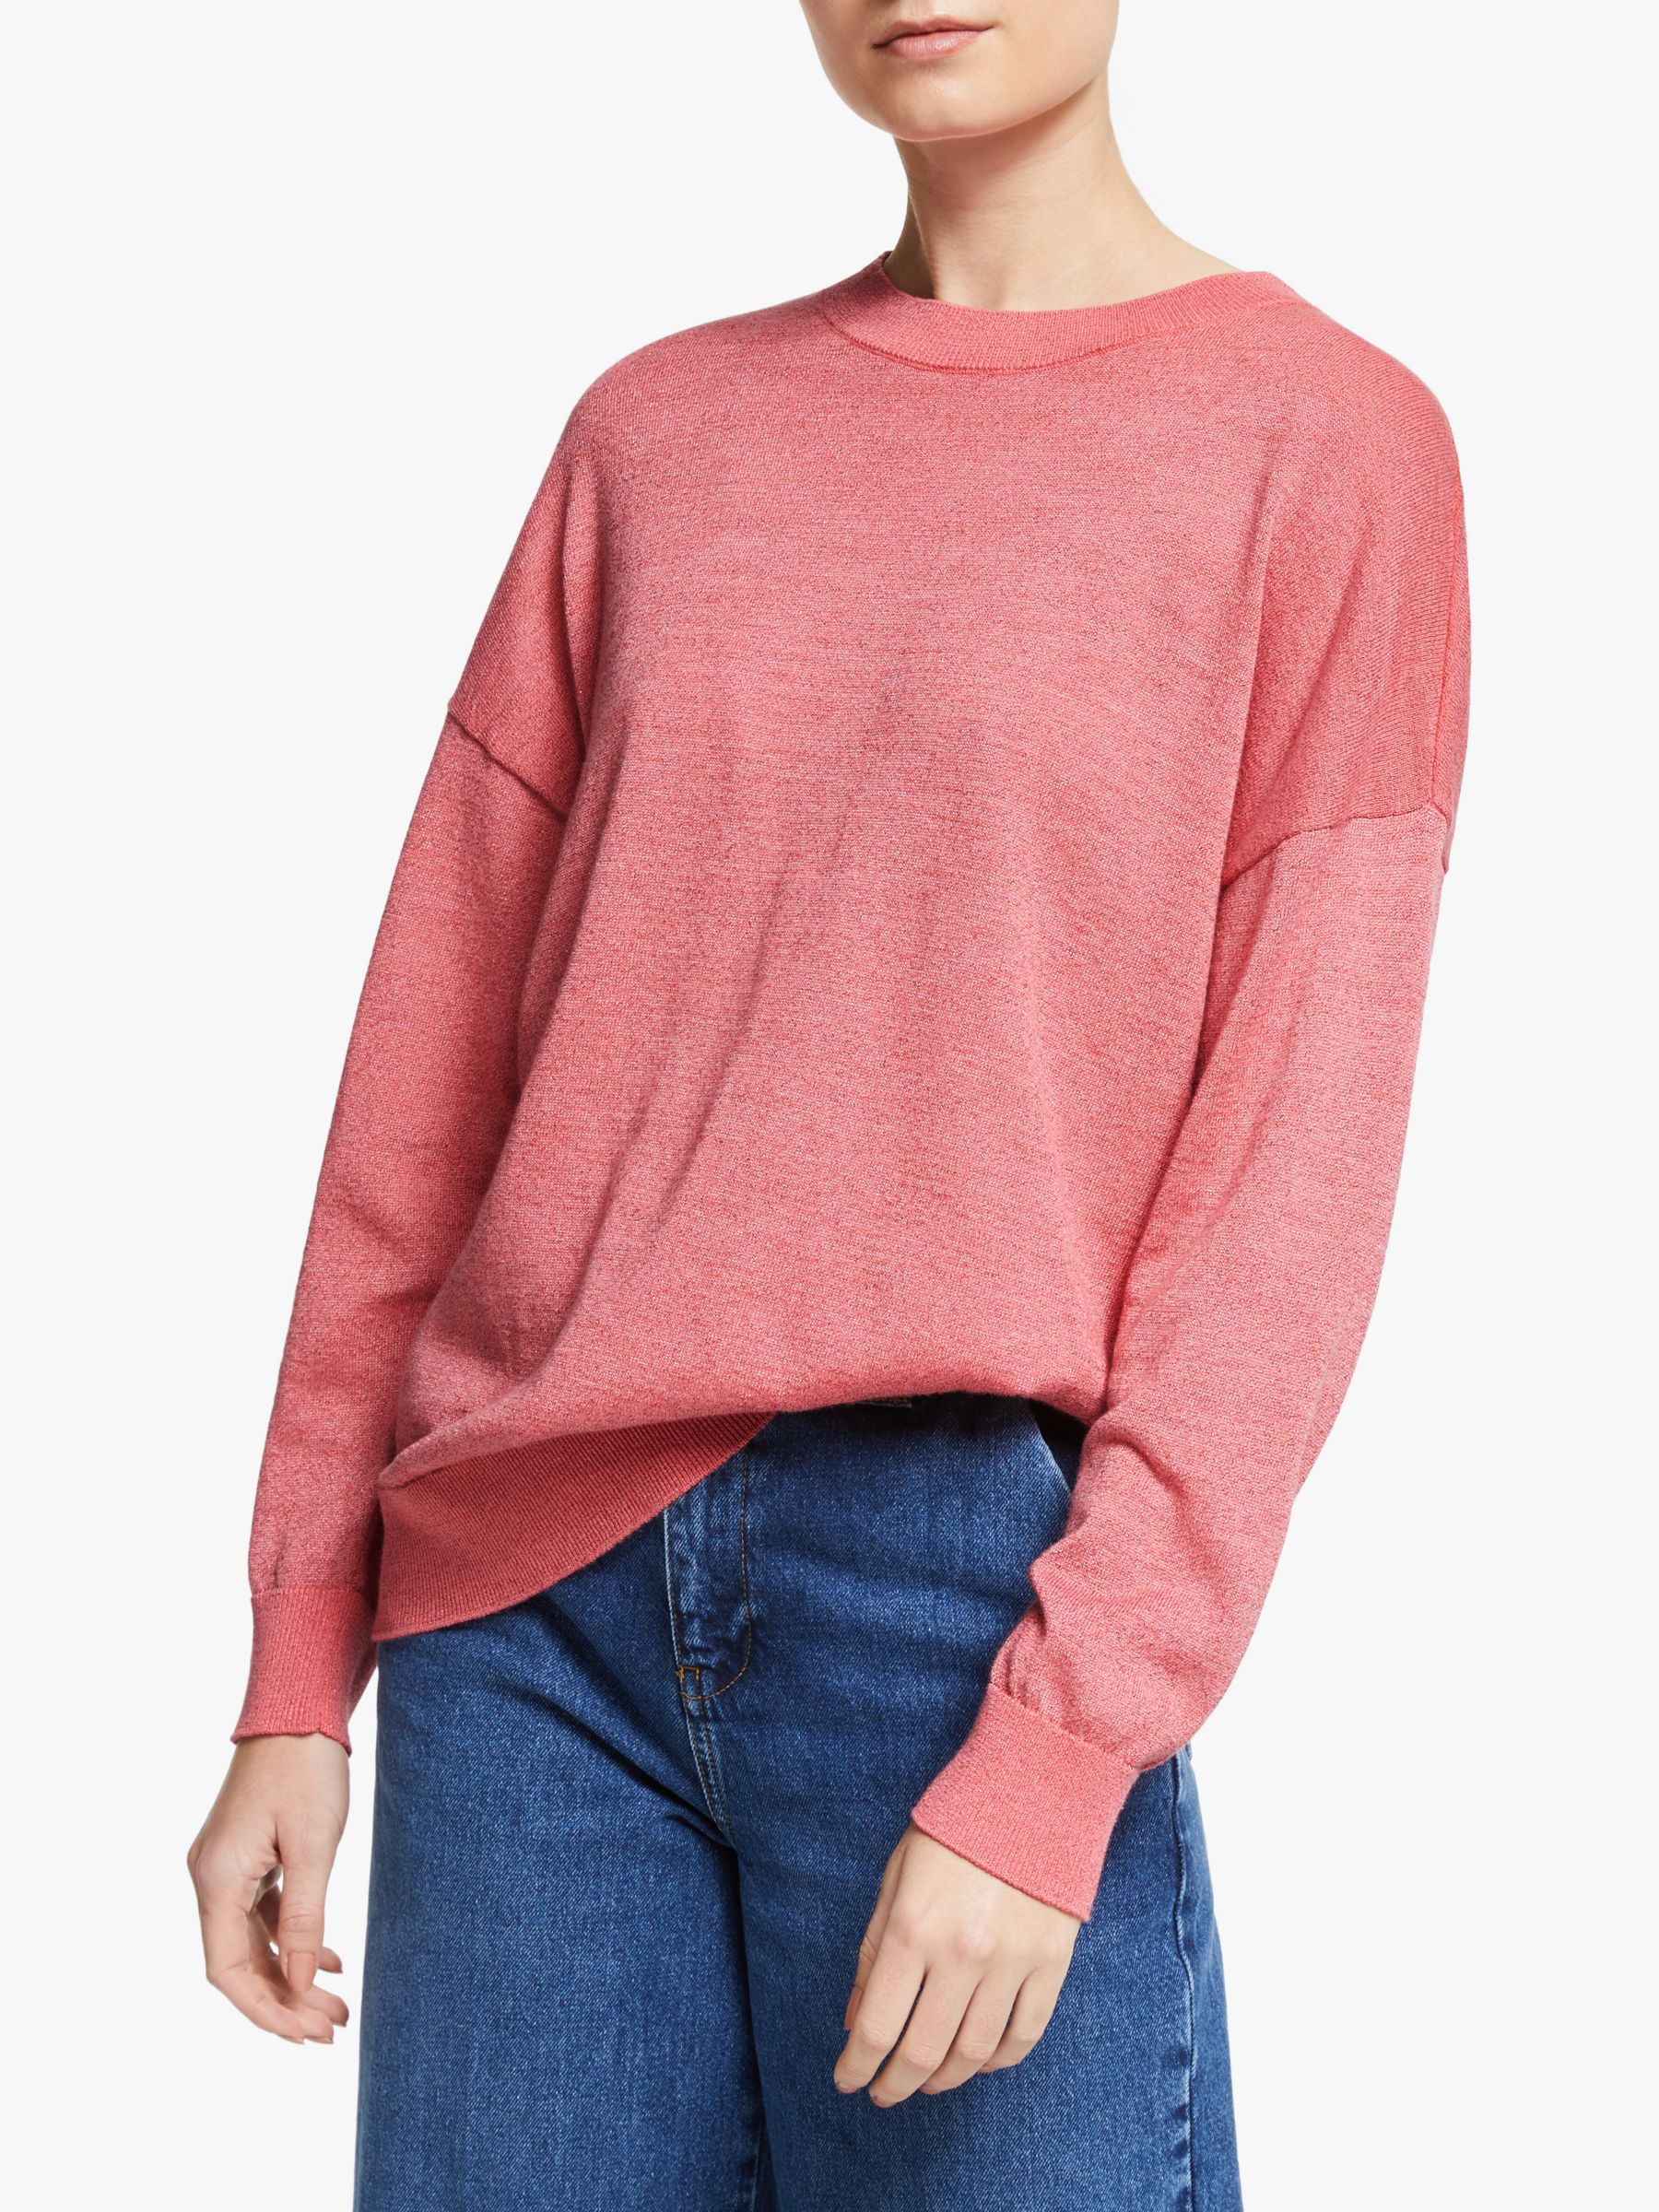 Vero Moda AWARE BY VERO MODA Johanna Jumper